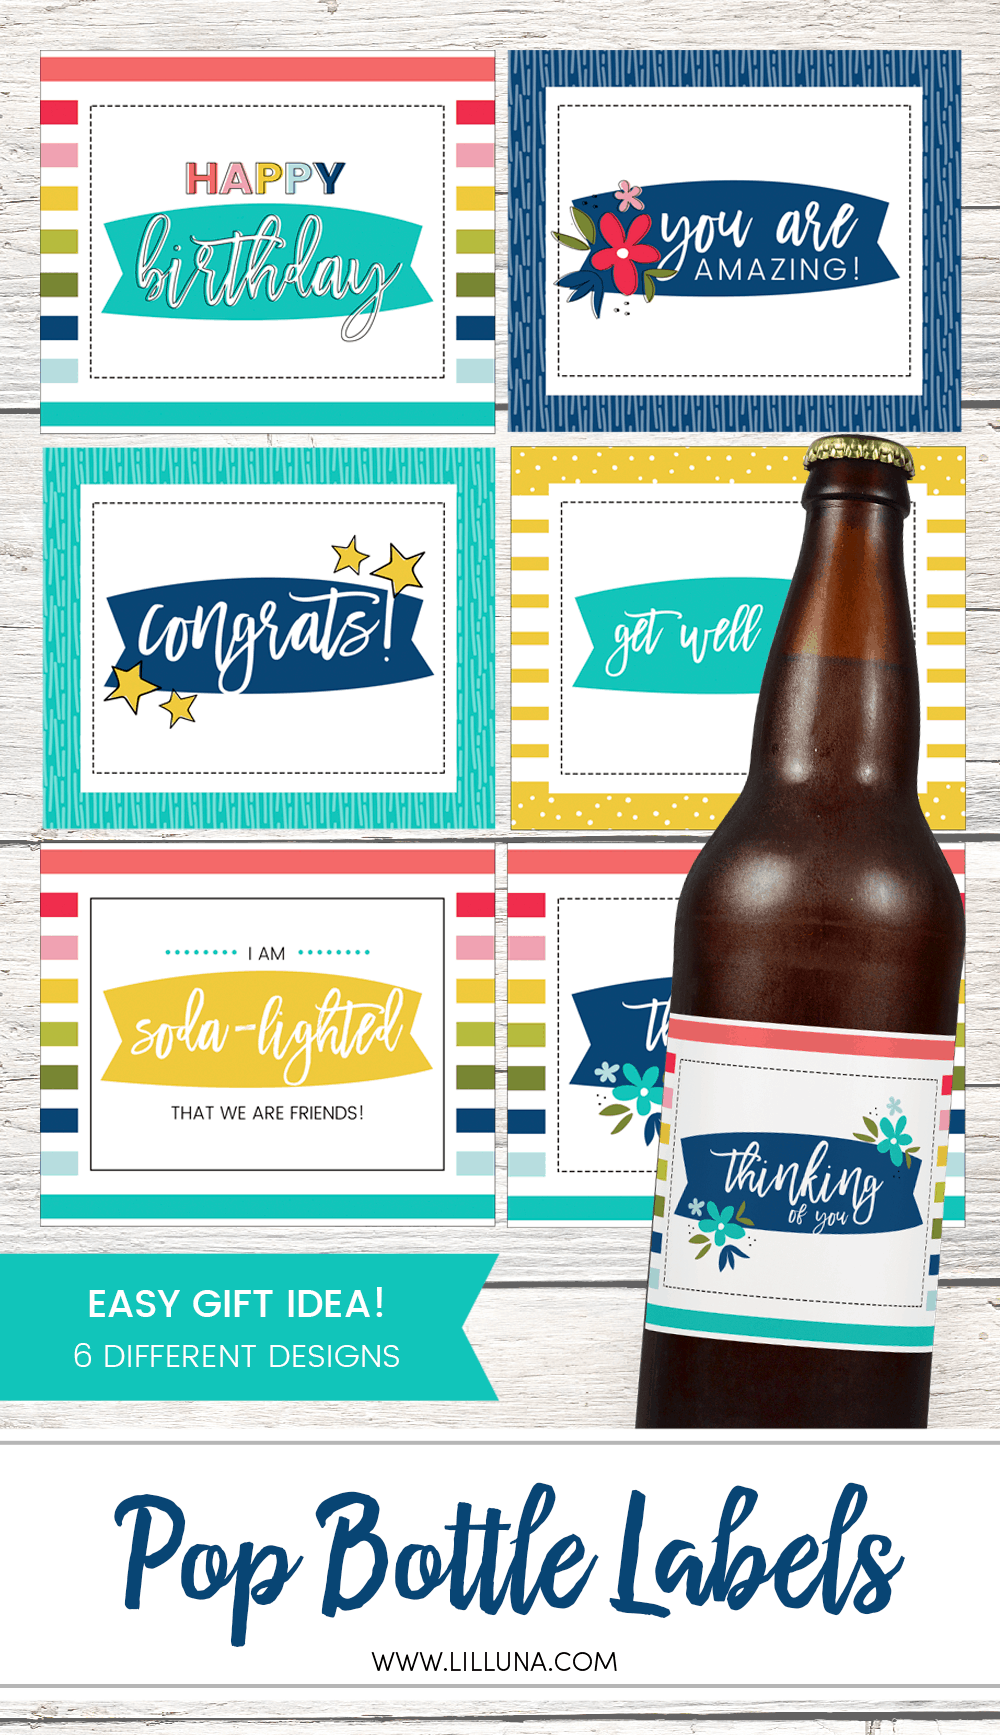 Pop Bottle Labels